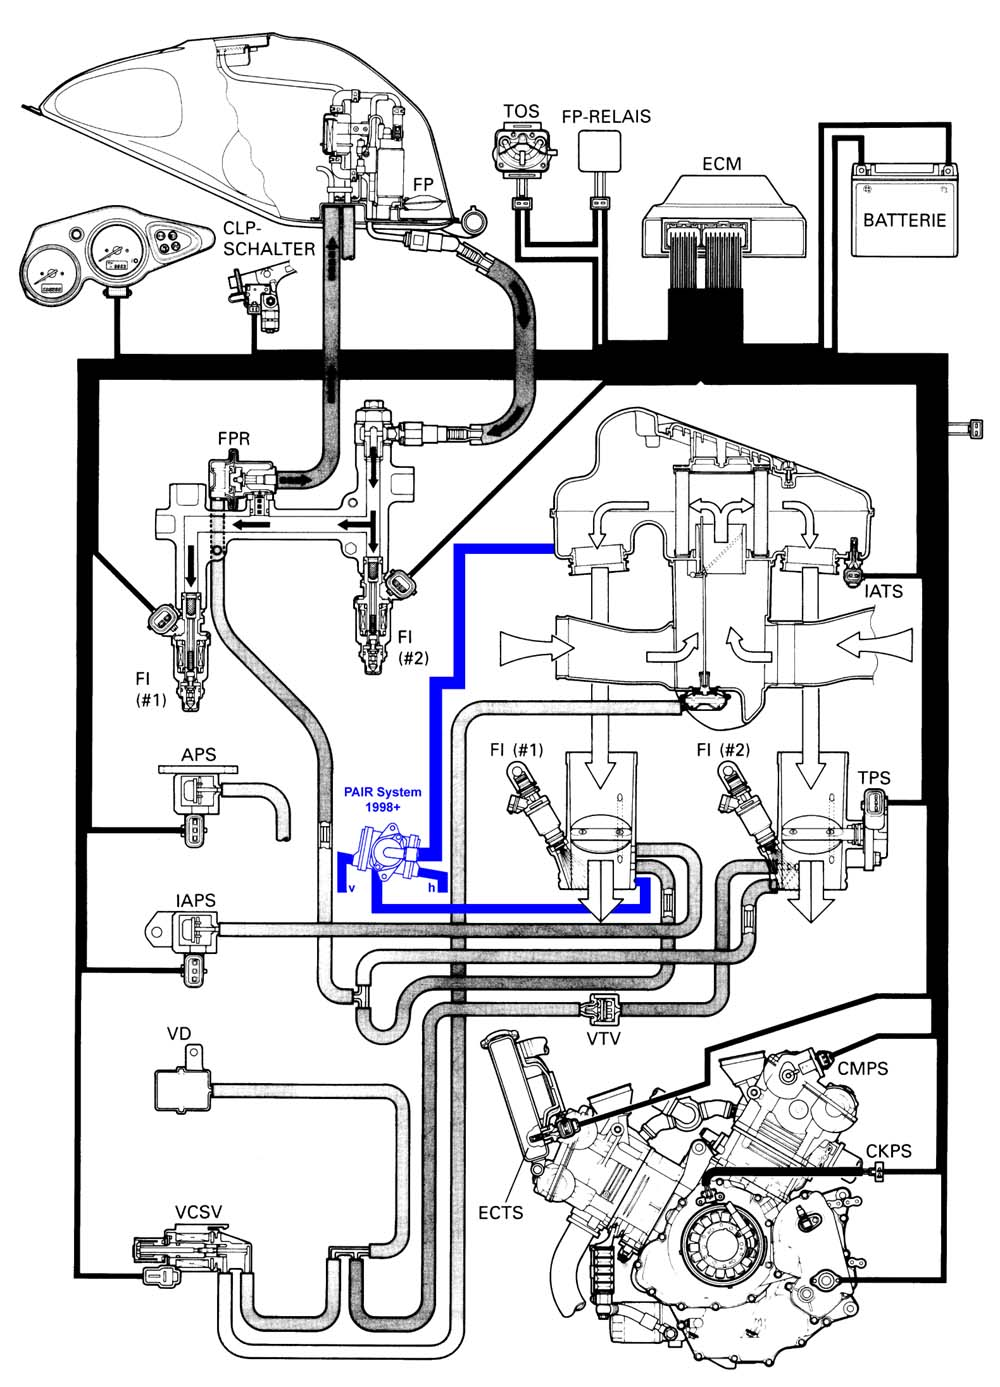 Suzuki Xl7 Fuel Line Diagram moreover 2000 Pontiac Montana Engine Diagram likewise Chevy Hhr Starter Wiring Diagram furthermore 4 3l V6 Vortec Engine Block Diagram furthermore Kia Sportage Egr Valve Location As Well 2004. on suzuki forenza vacuum hose diagram